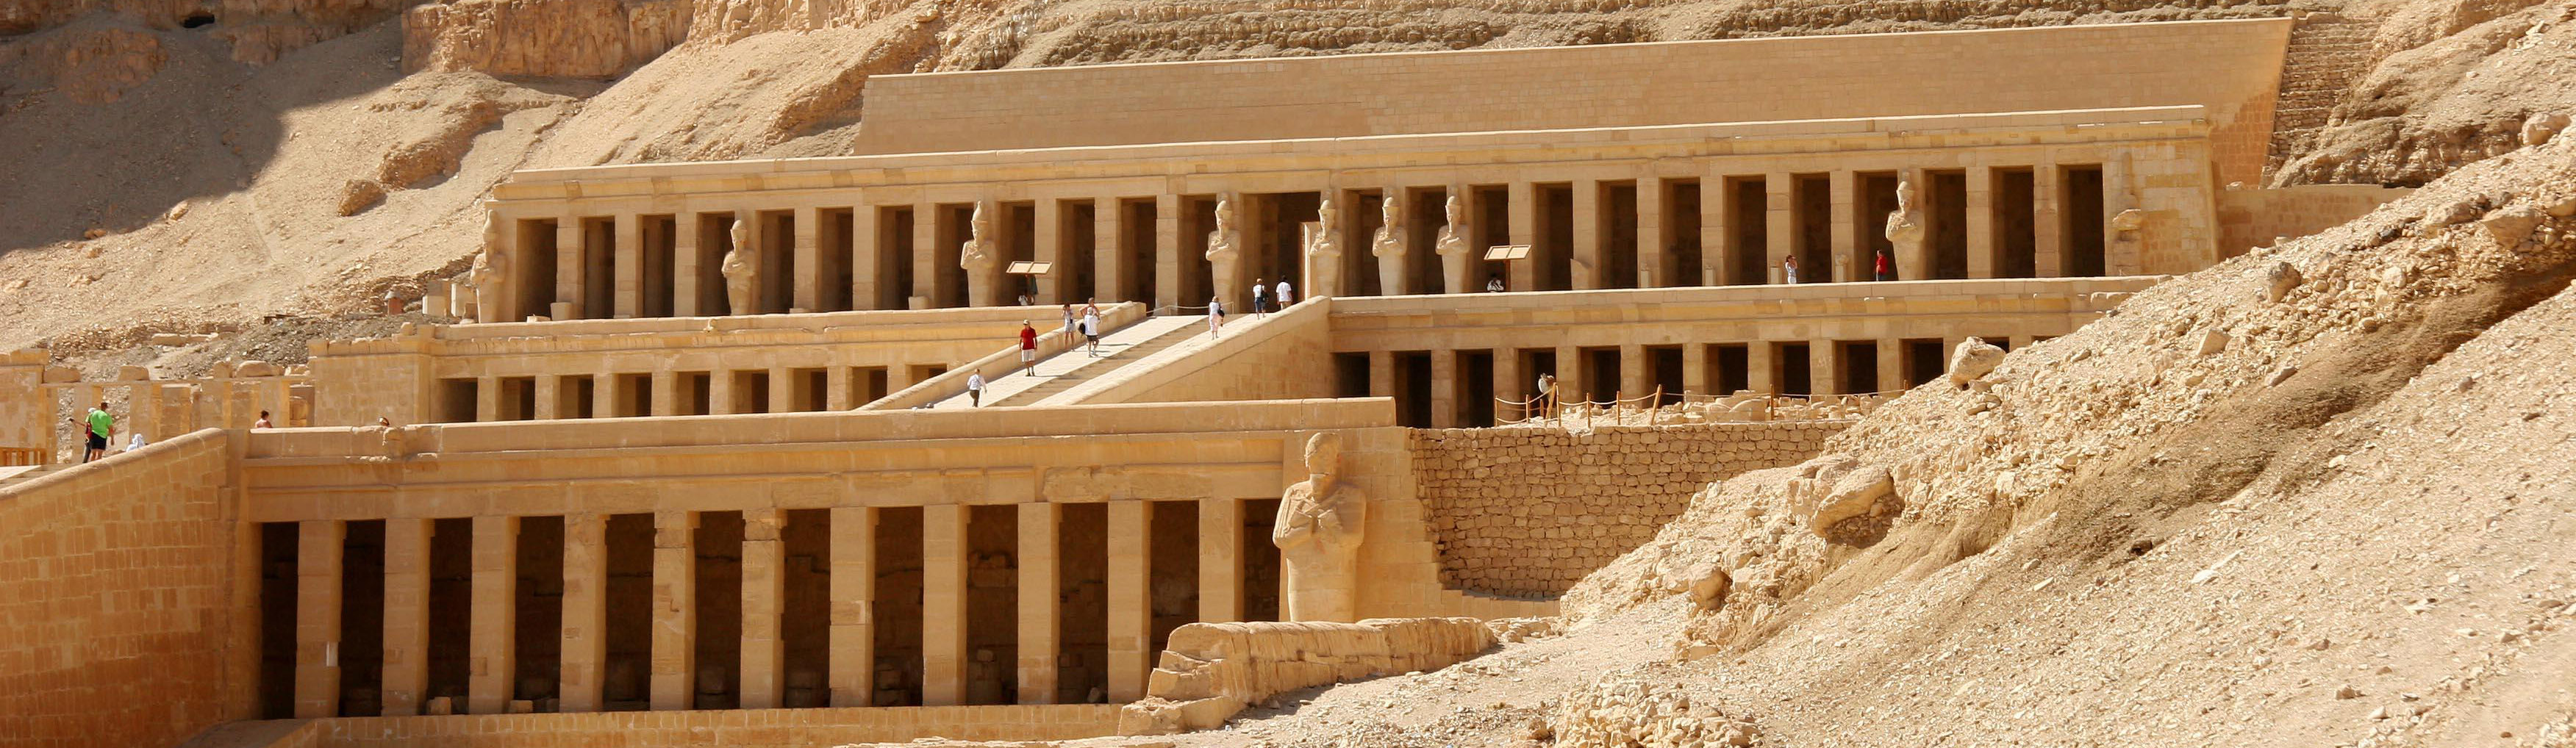 Deir el-Bahari Temples and Tombs - West Bank Of The Nile Luxor, Egypt